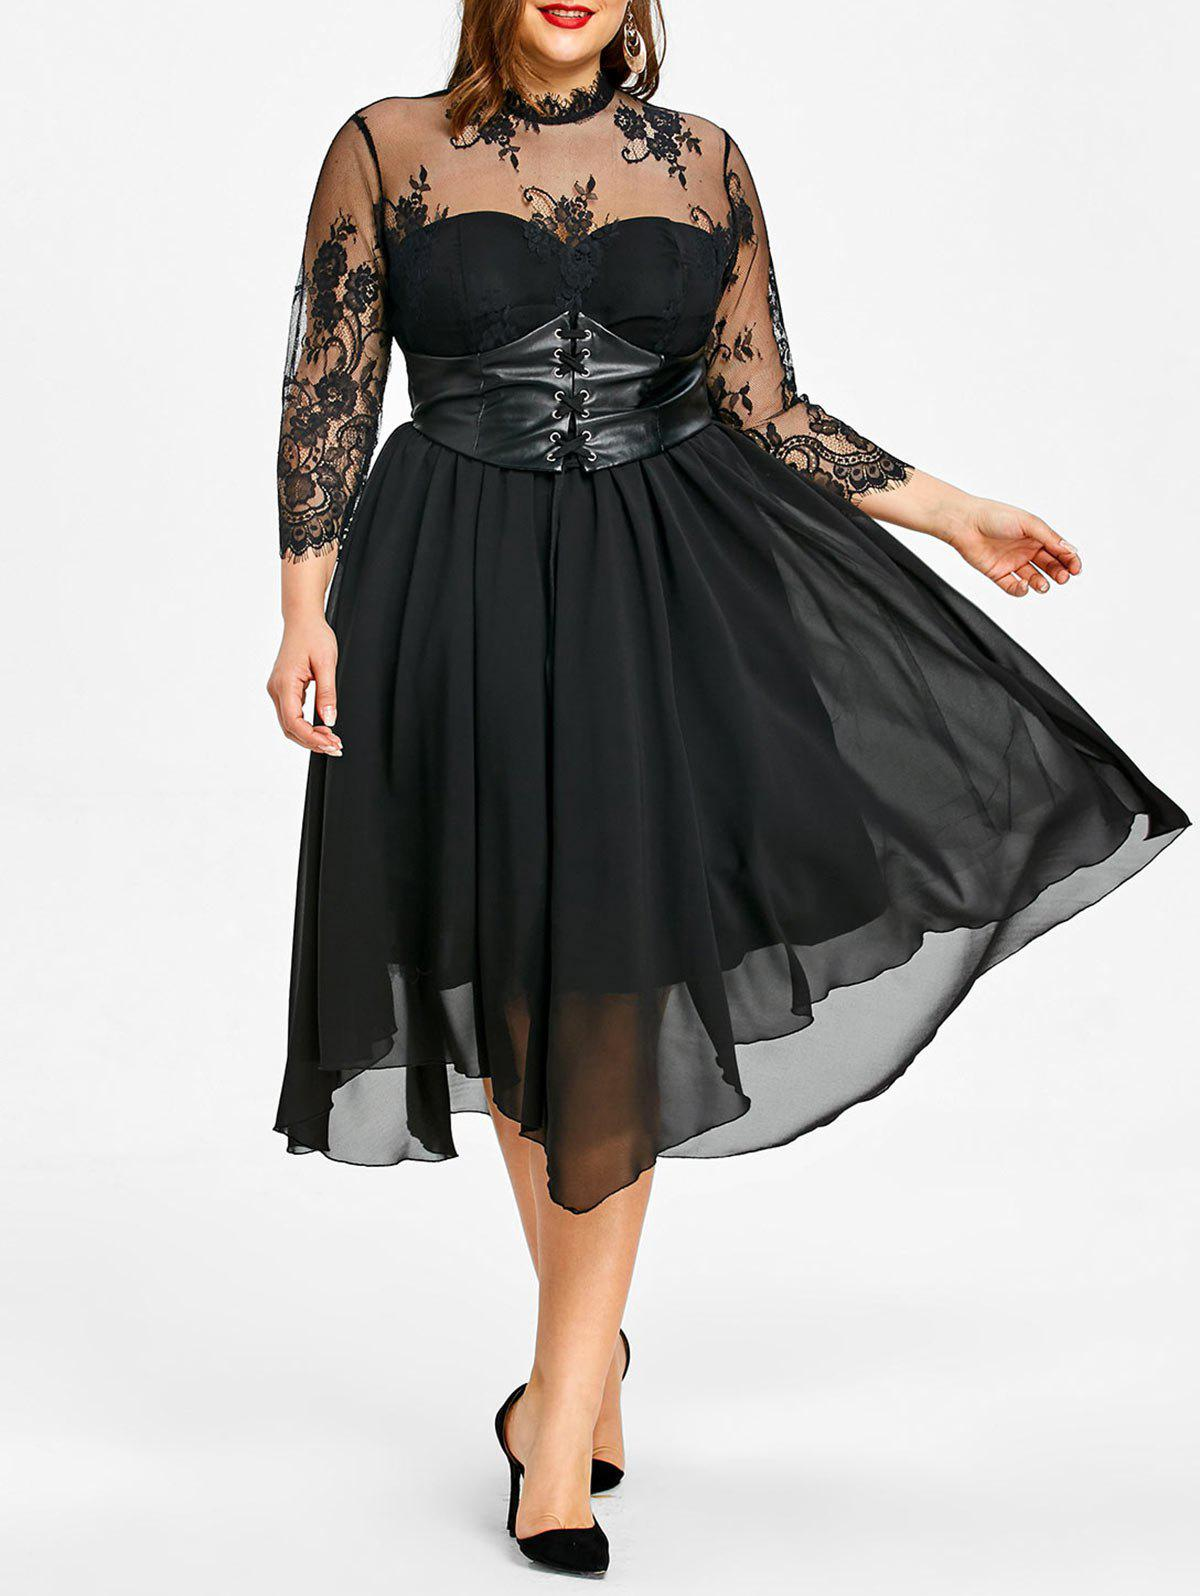 c132548335f 31% OFF  Plus Size Lace Panel Gothic Dress